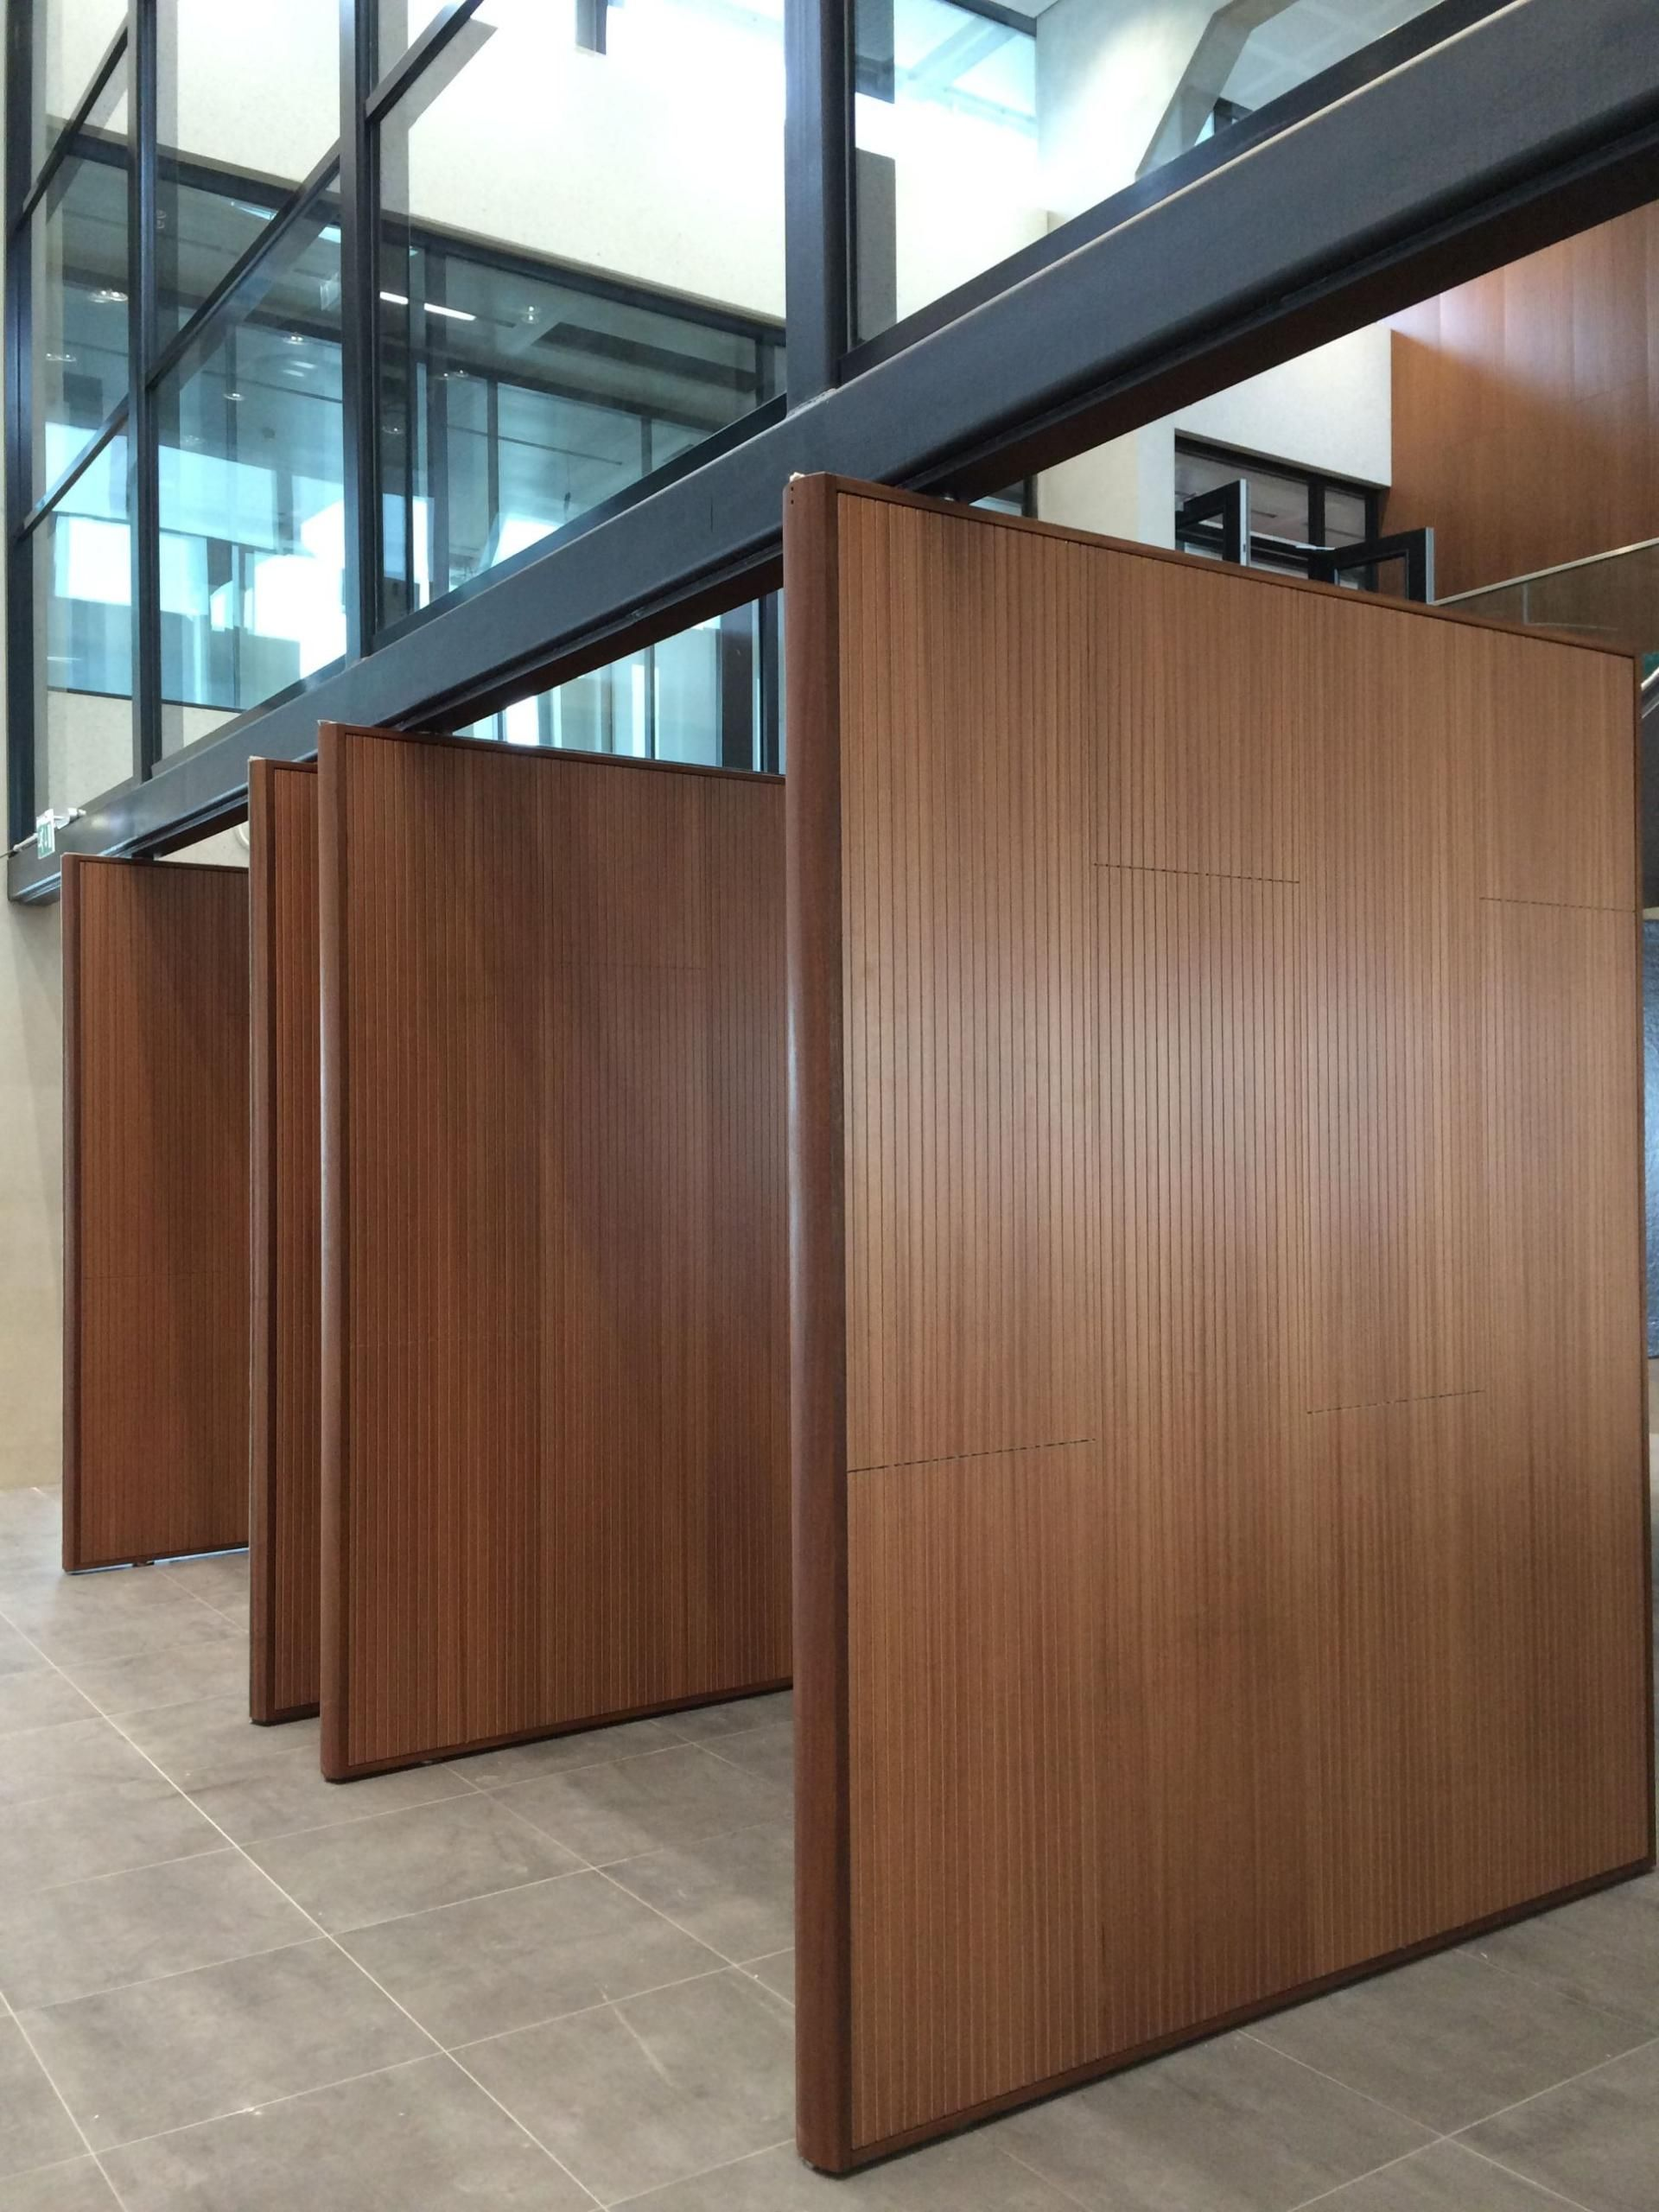 Four Large Wooden Pivotdoors Designed With Soundproof